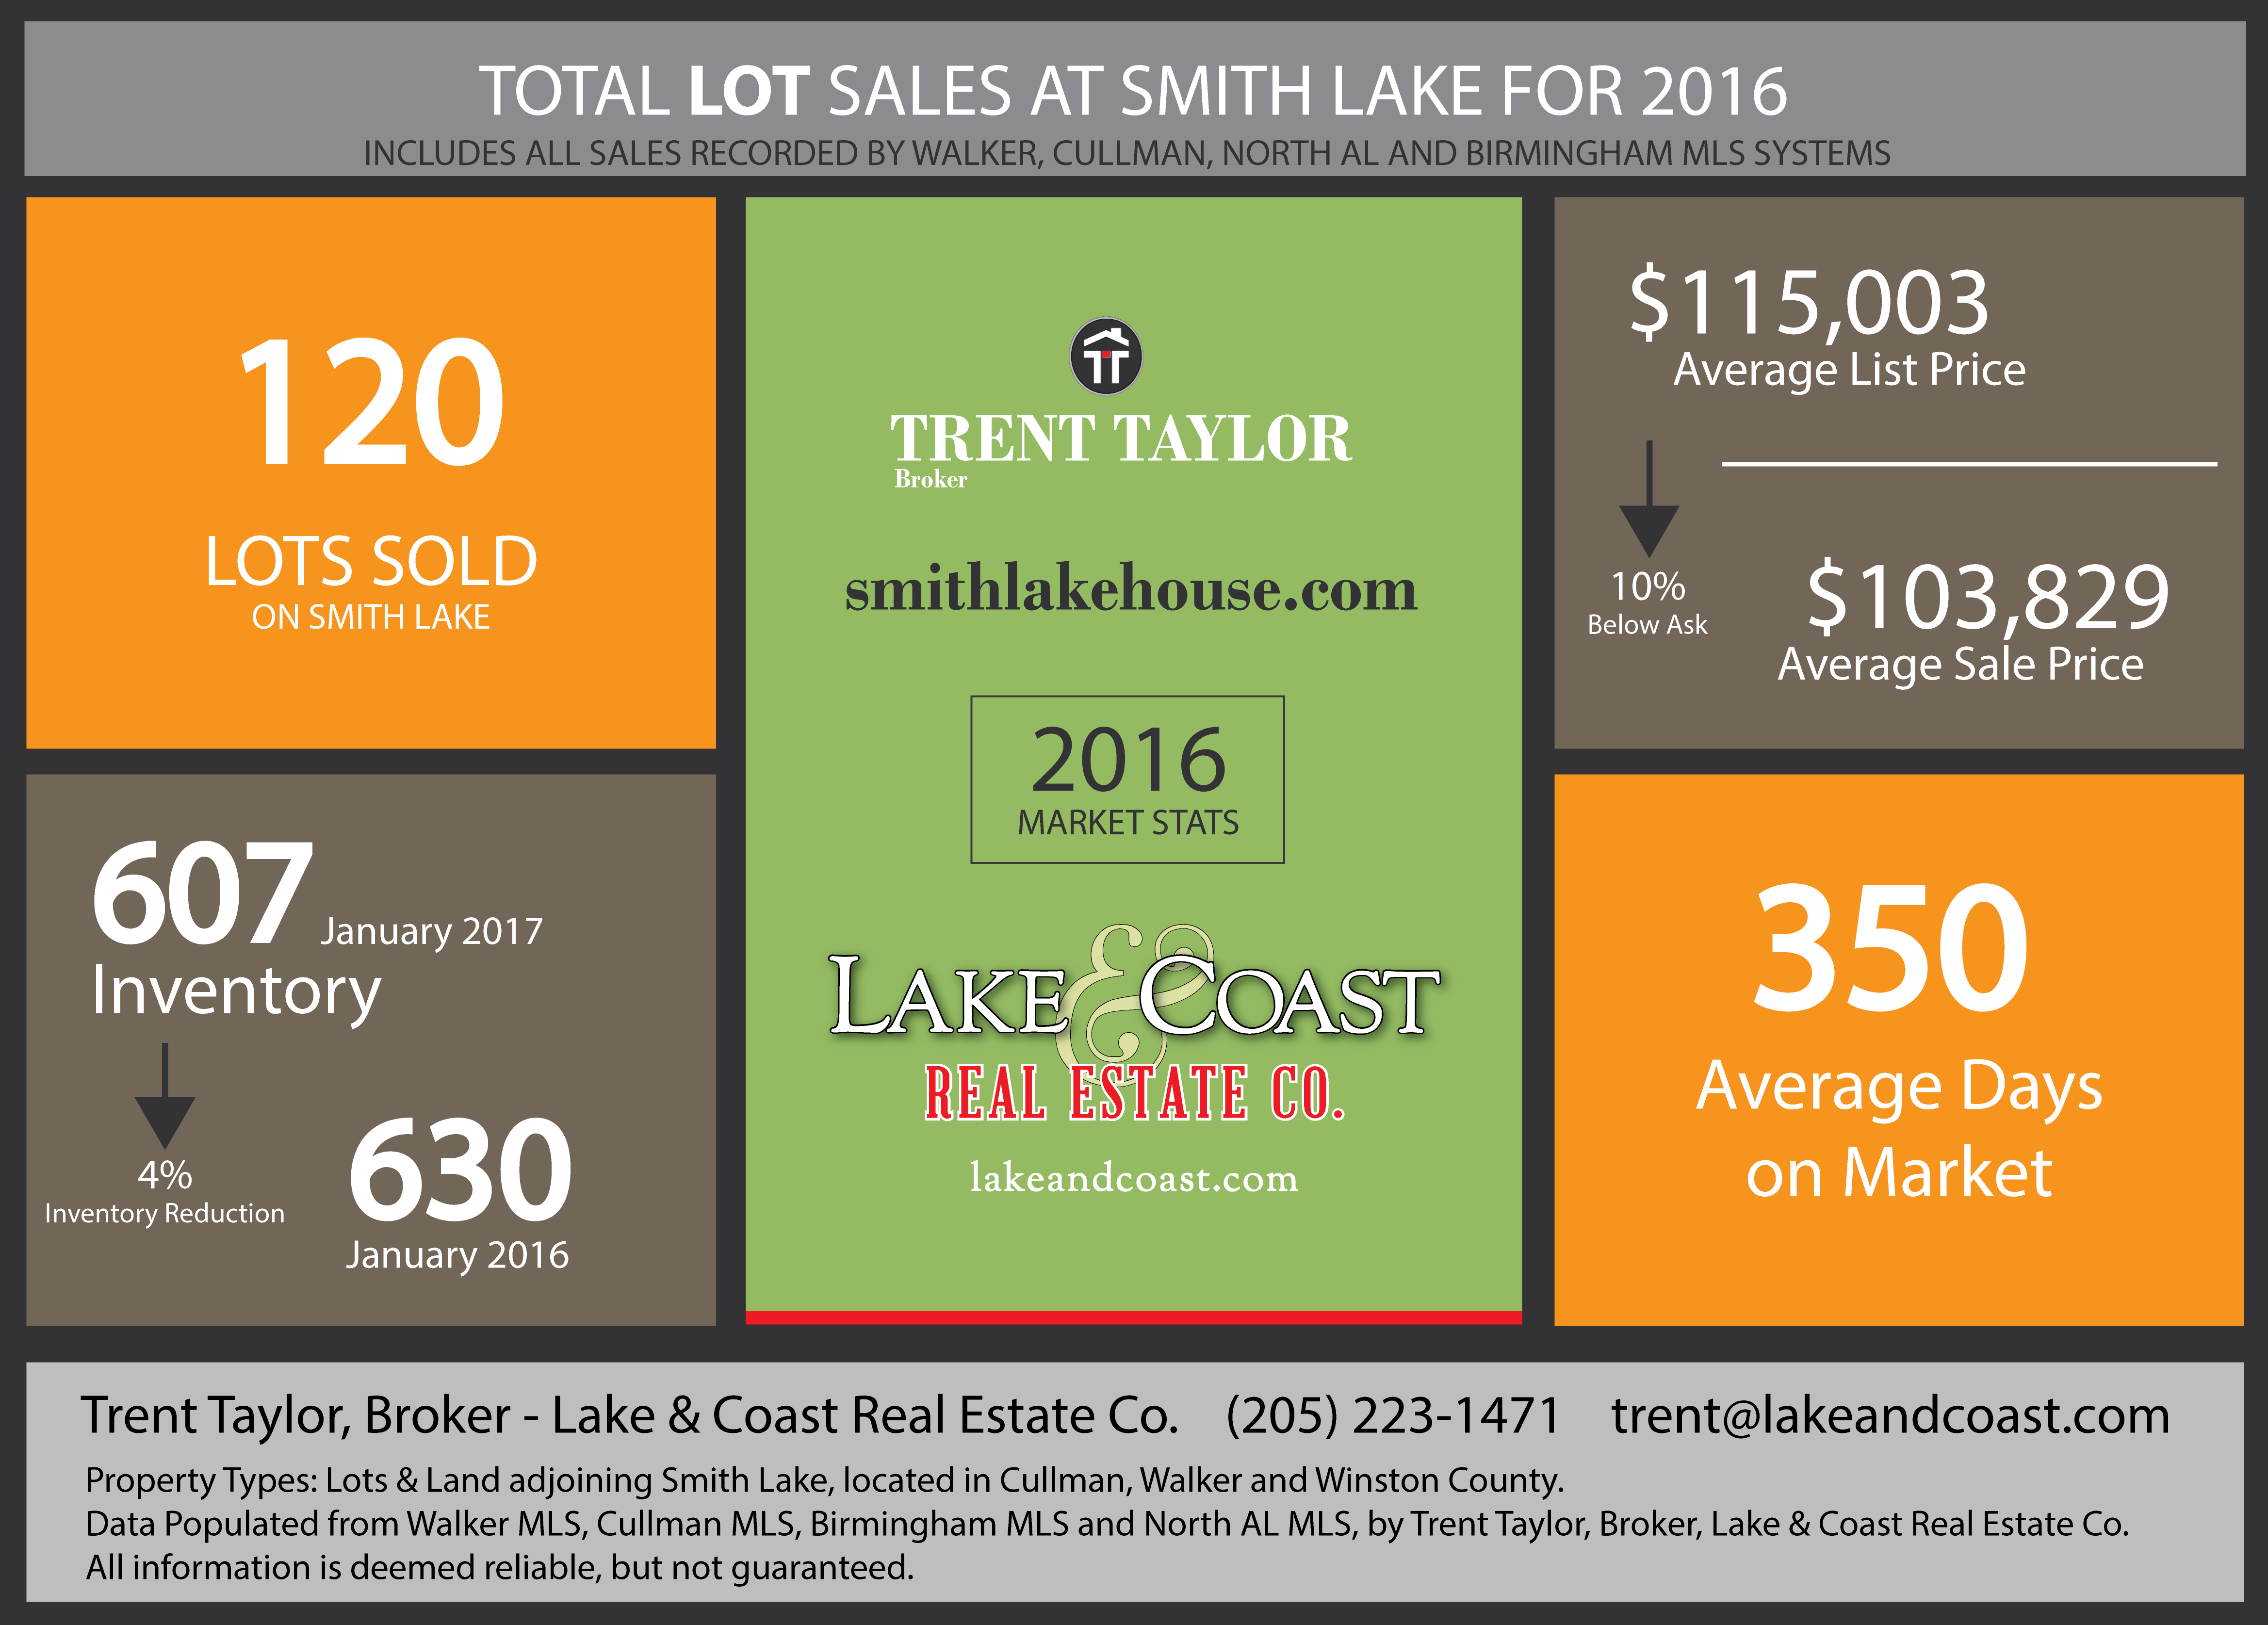 Smith Lake Lots Sales for 2016